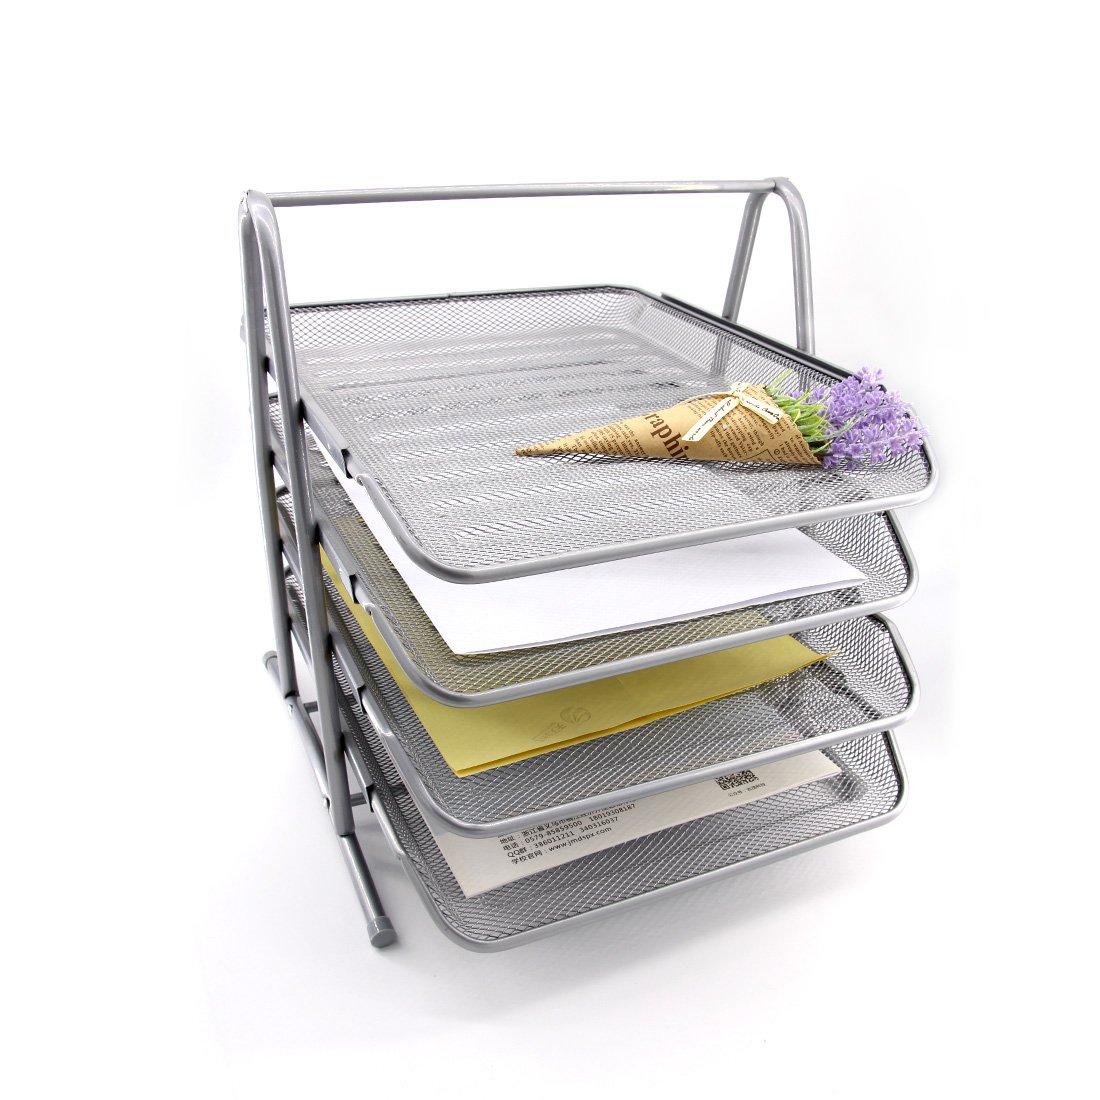 HAODE Fashion 4 Tiers Steel Mesh Document Tray, File Basket, Office Desk Organizer, Letter Tray Organizer, Desktop Document Paper File Organizer, Silver